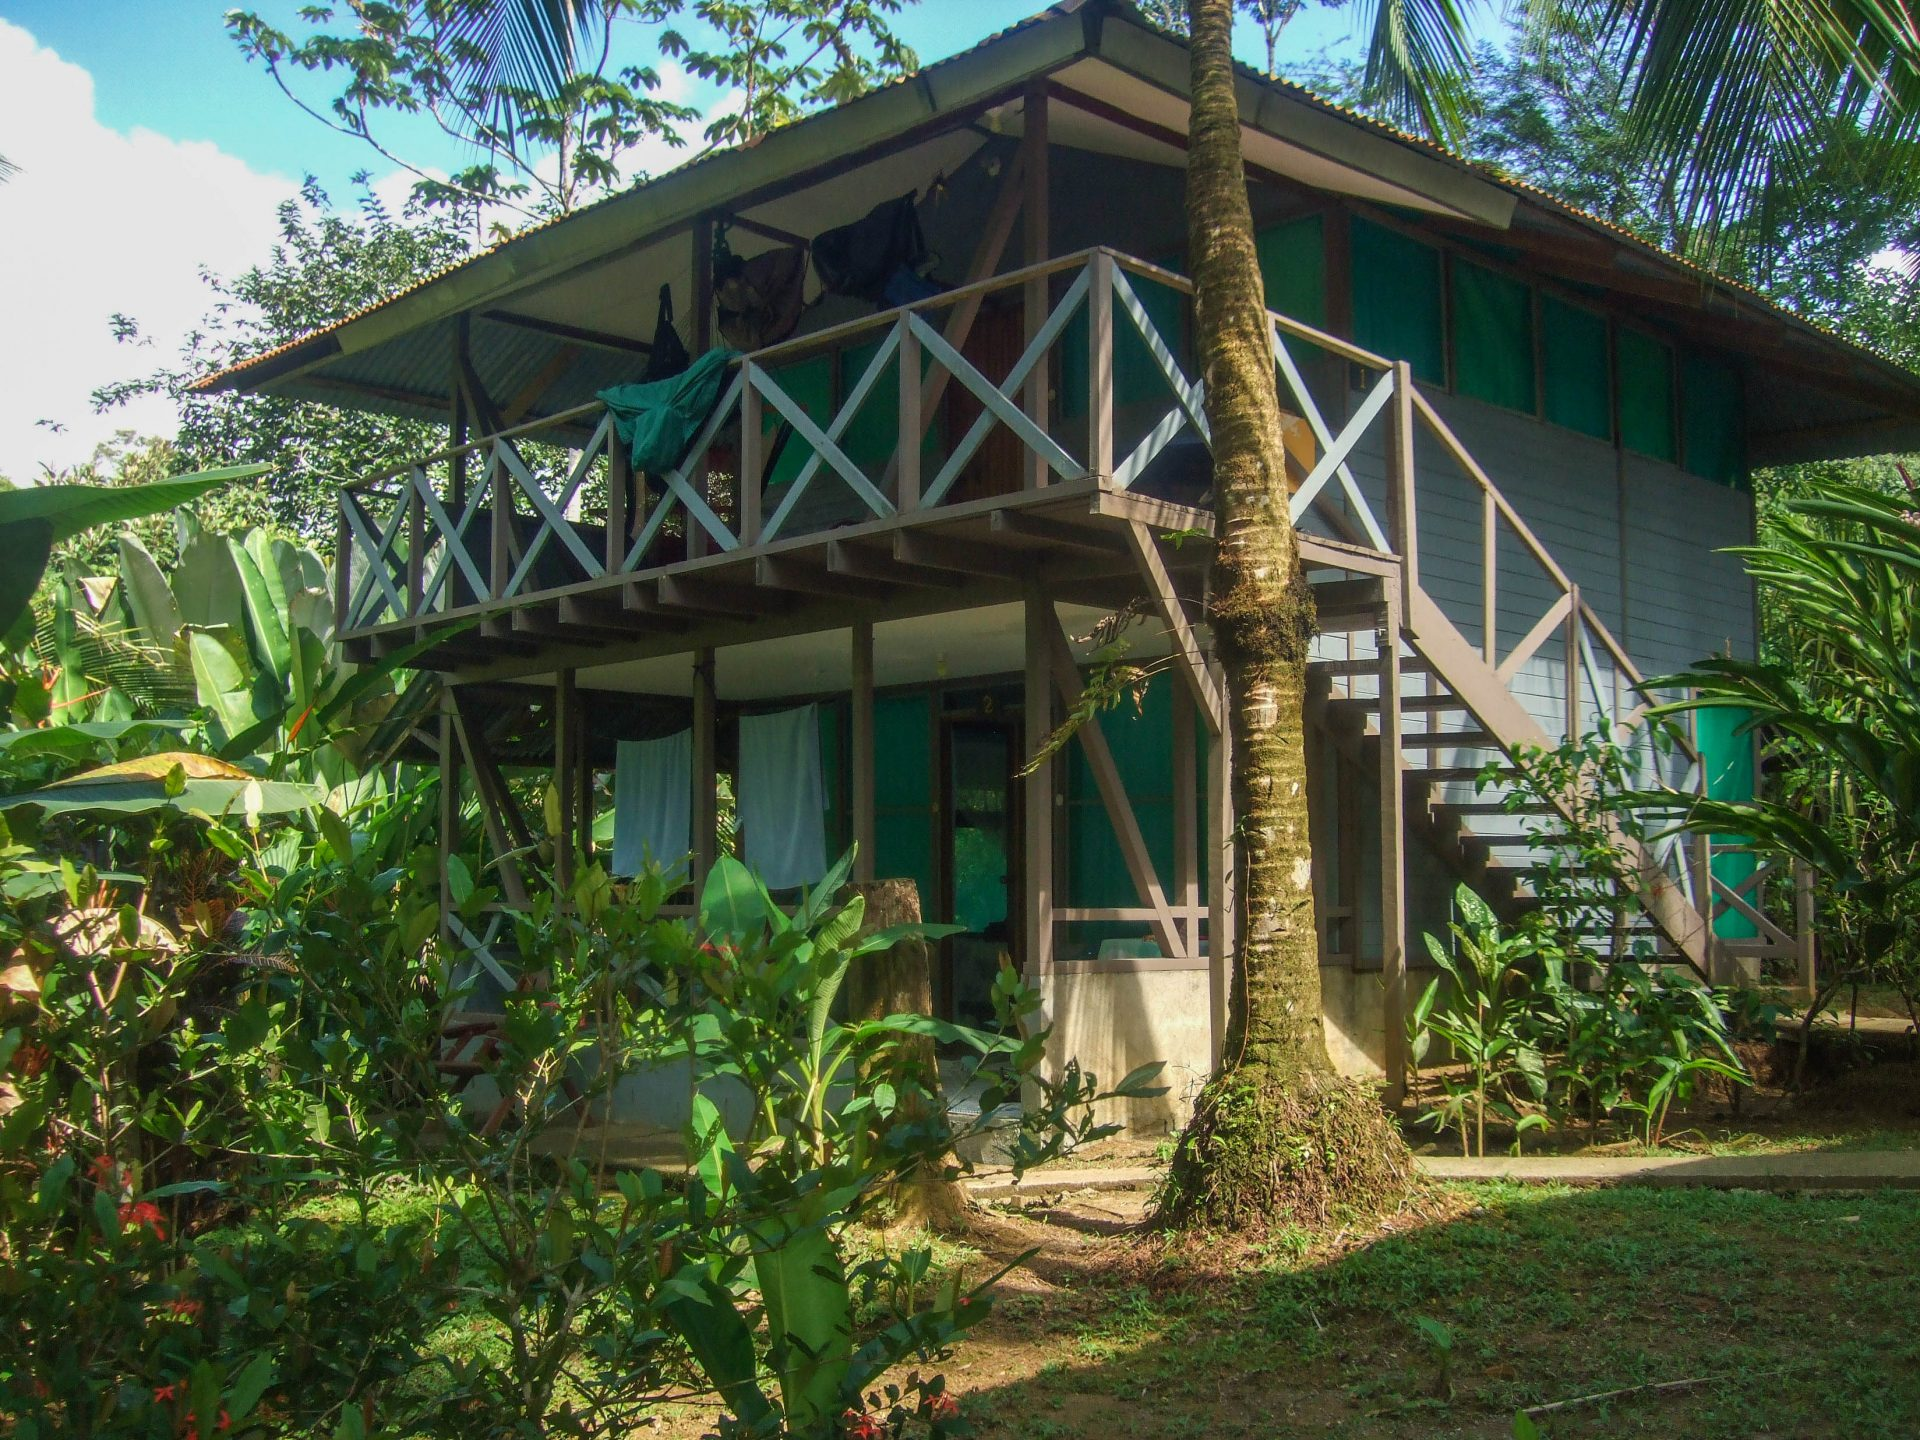 Two story lodge at an eco resort in Costa Rica - finding paradise in the Osa Peninsula